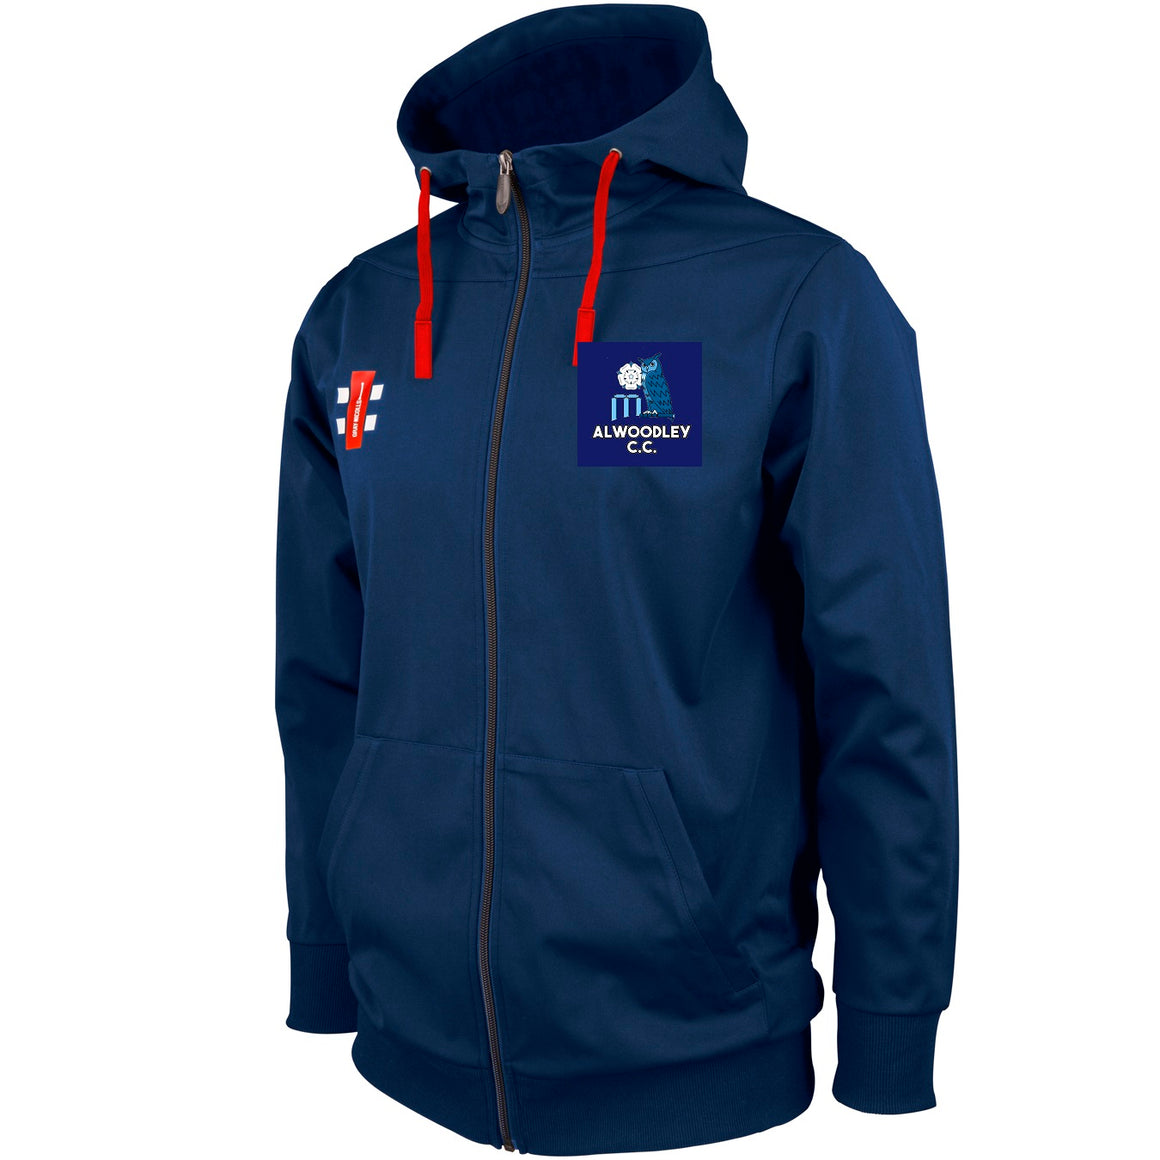 Alwoodley Senior Pro Performance Hoody